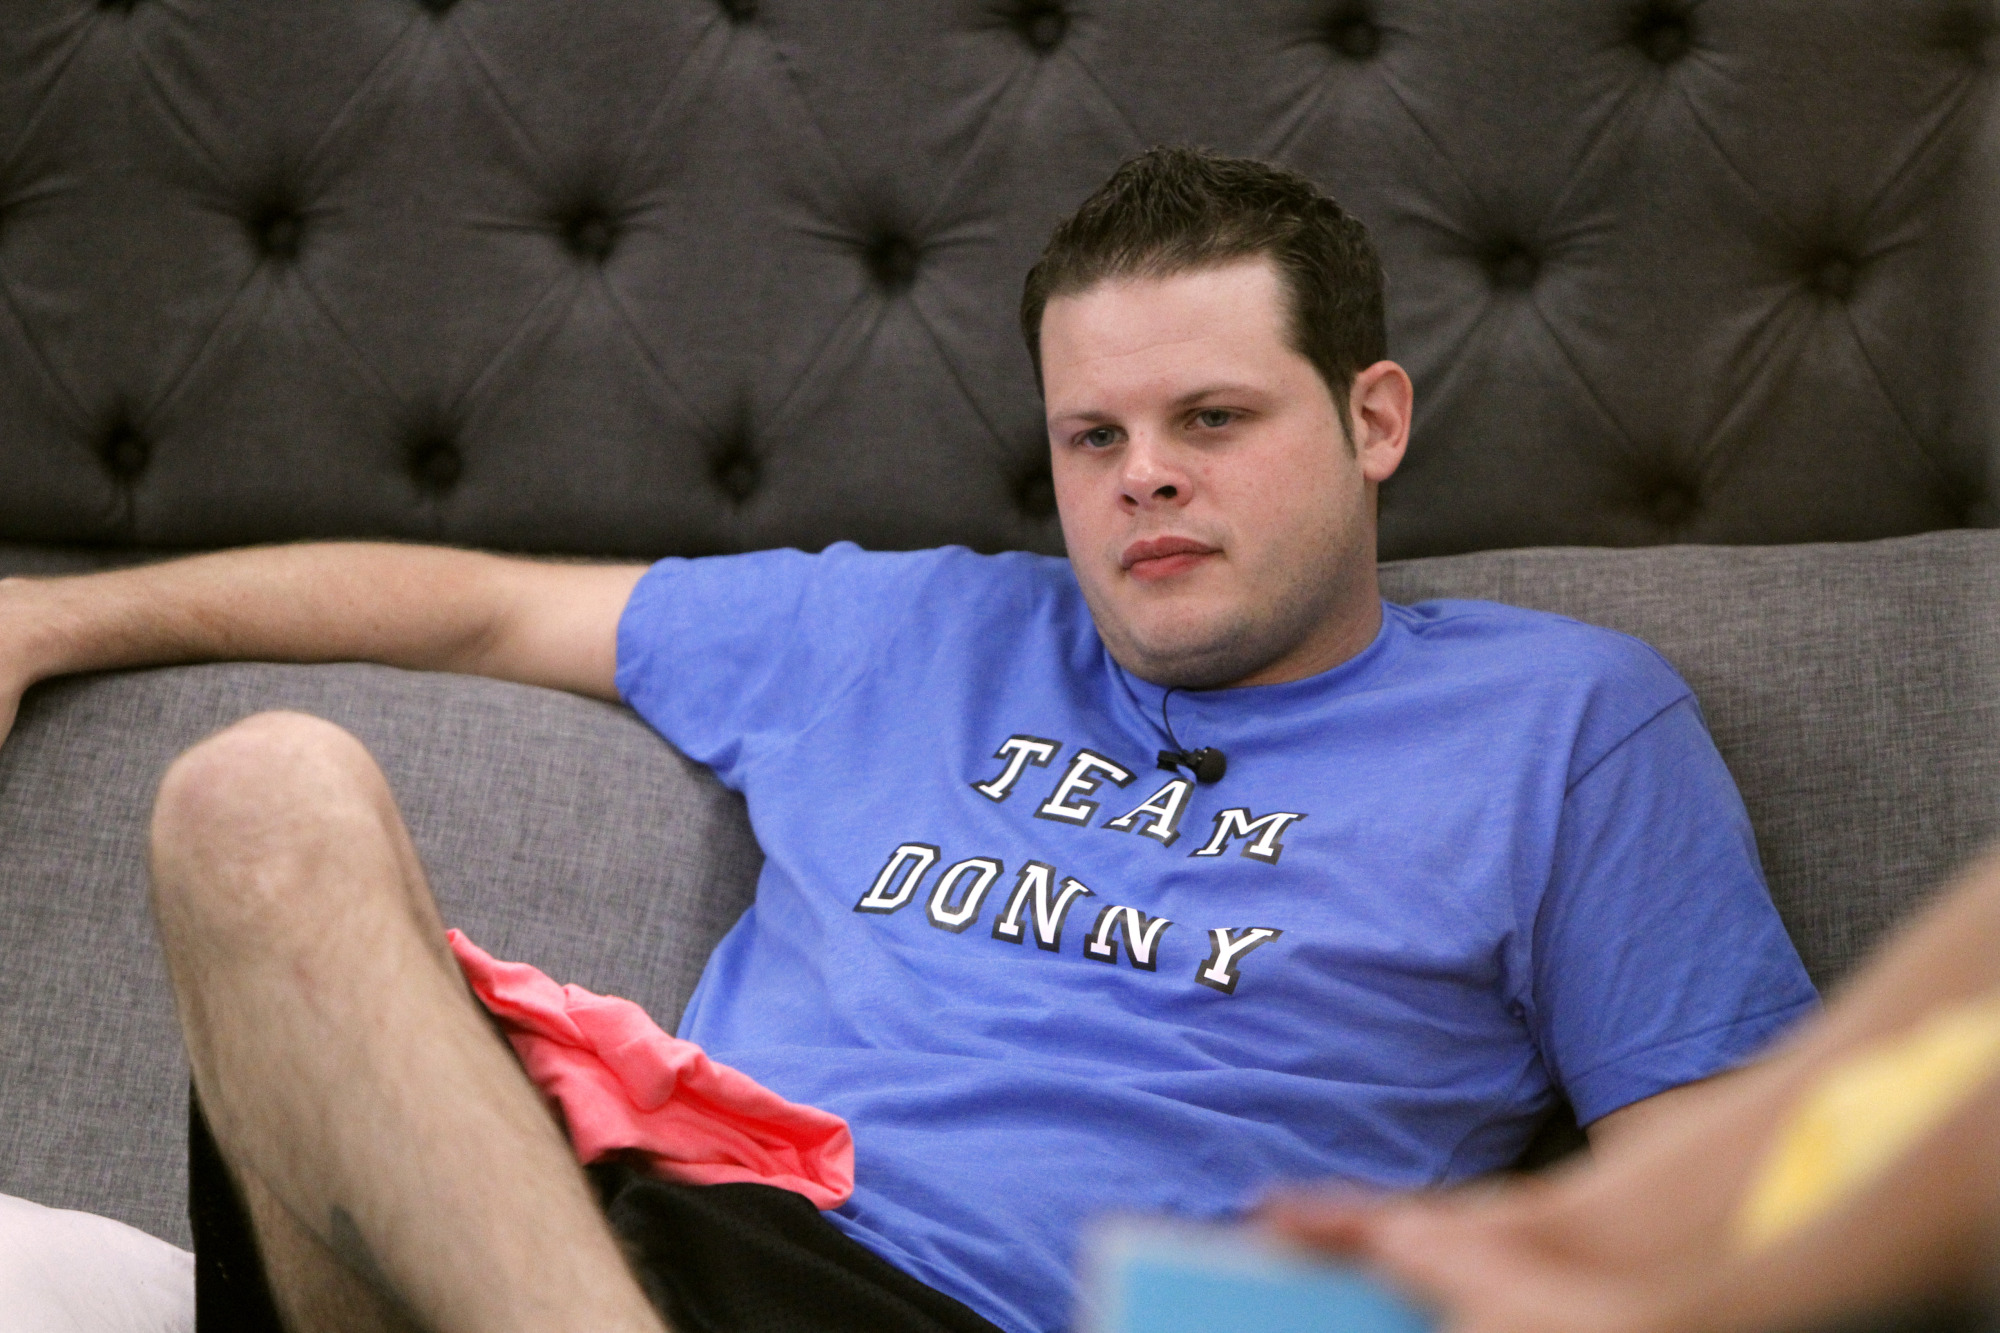 Derrick watches from the HoH room